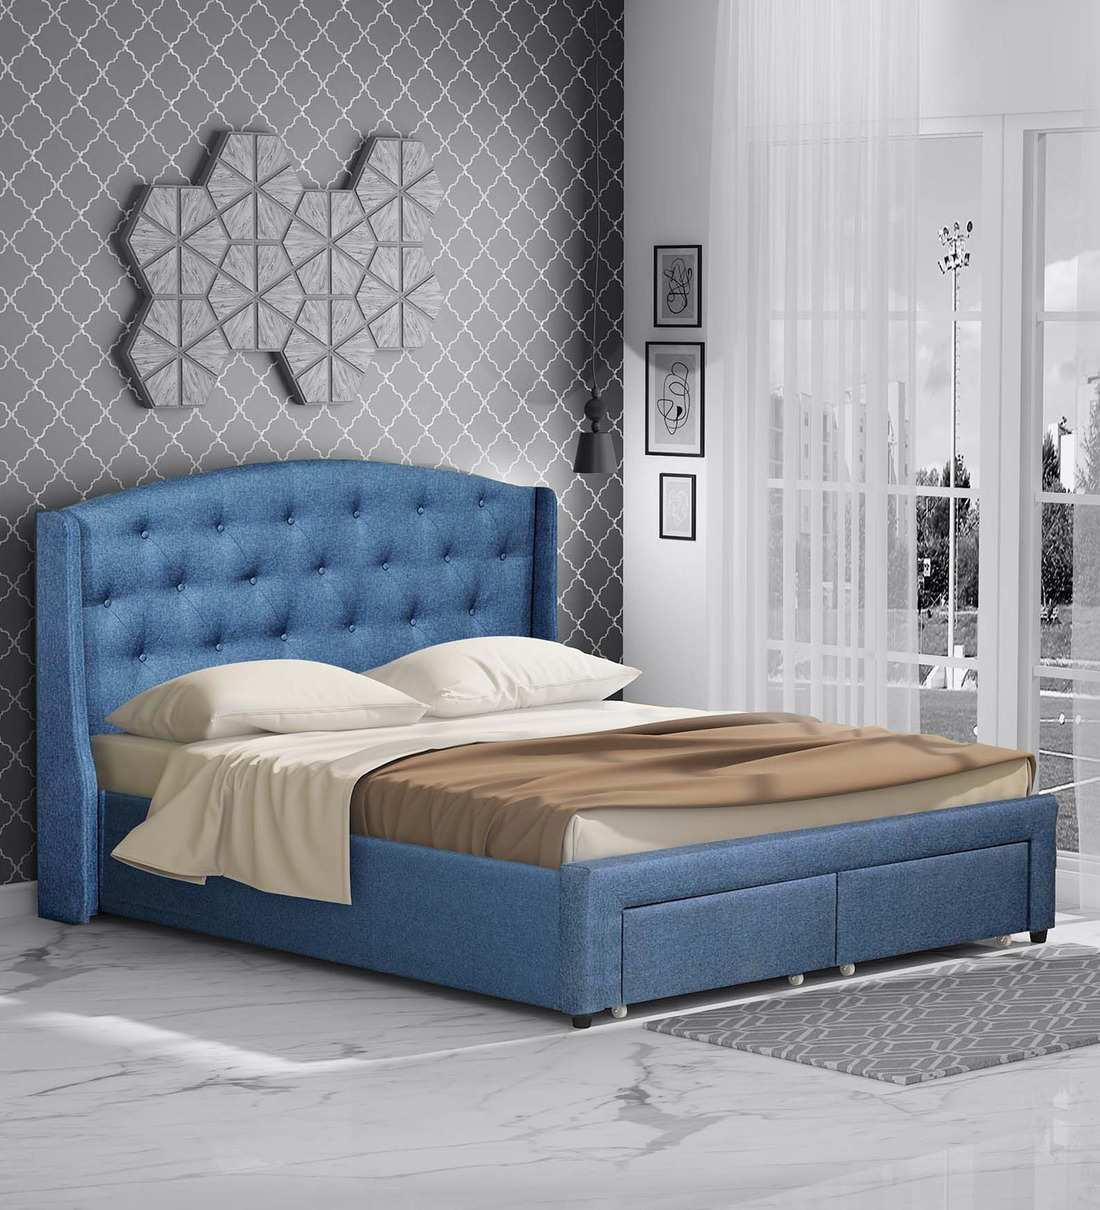 Buy Danilo Upholstered Queen Size Bed In Navy Blue Colour With Storage Drawers Casacraft By Pepperfry Online Queen Size Upholstered Beds Beds Furniture Pepperfry Product